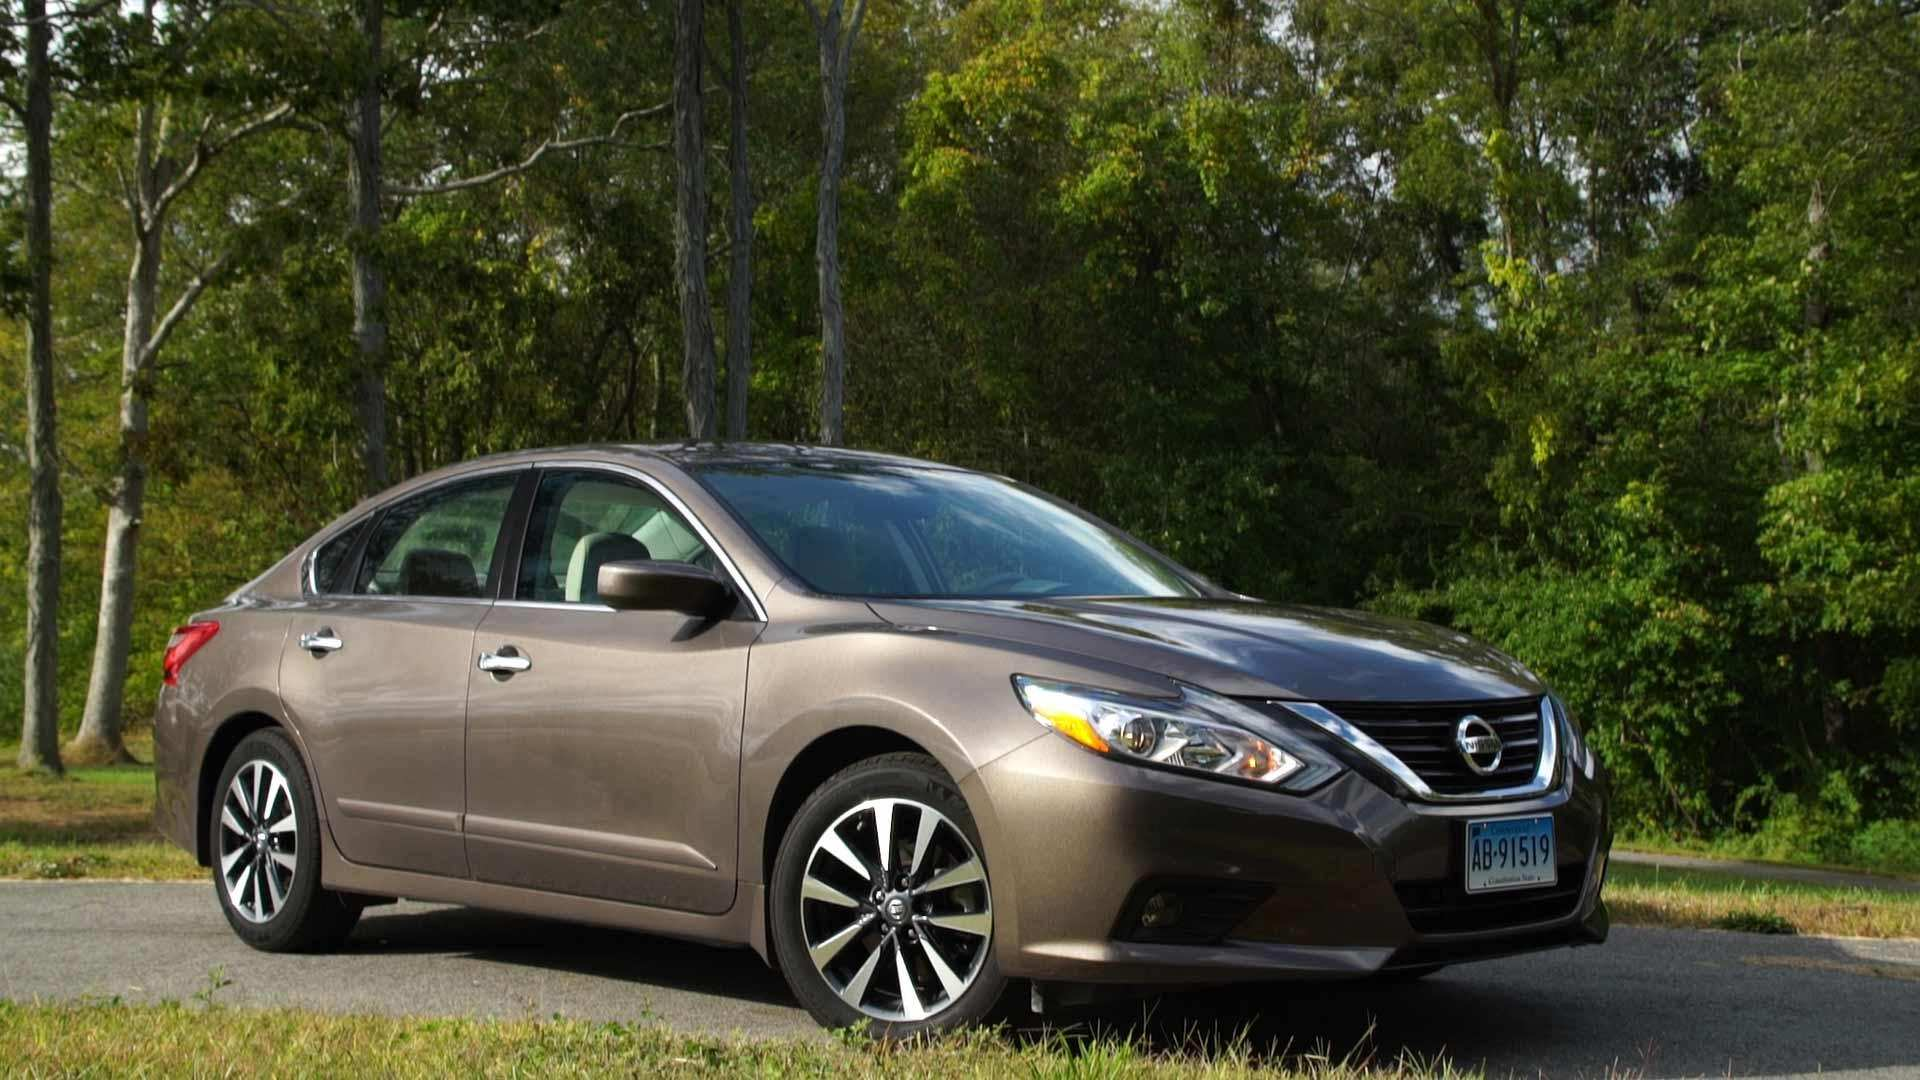 58 The 2018 Nissan Altima Reviews Pricing